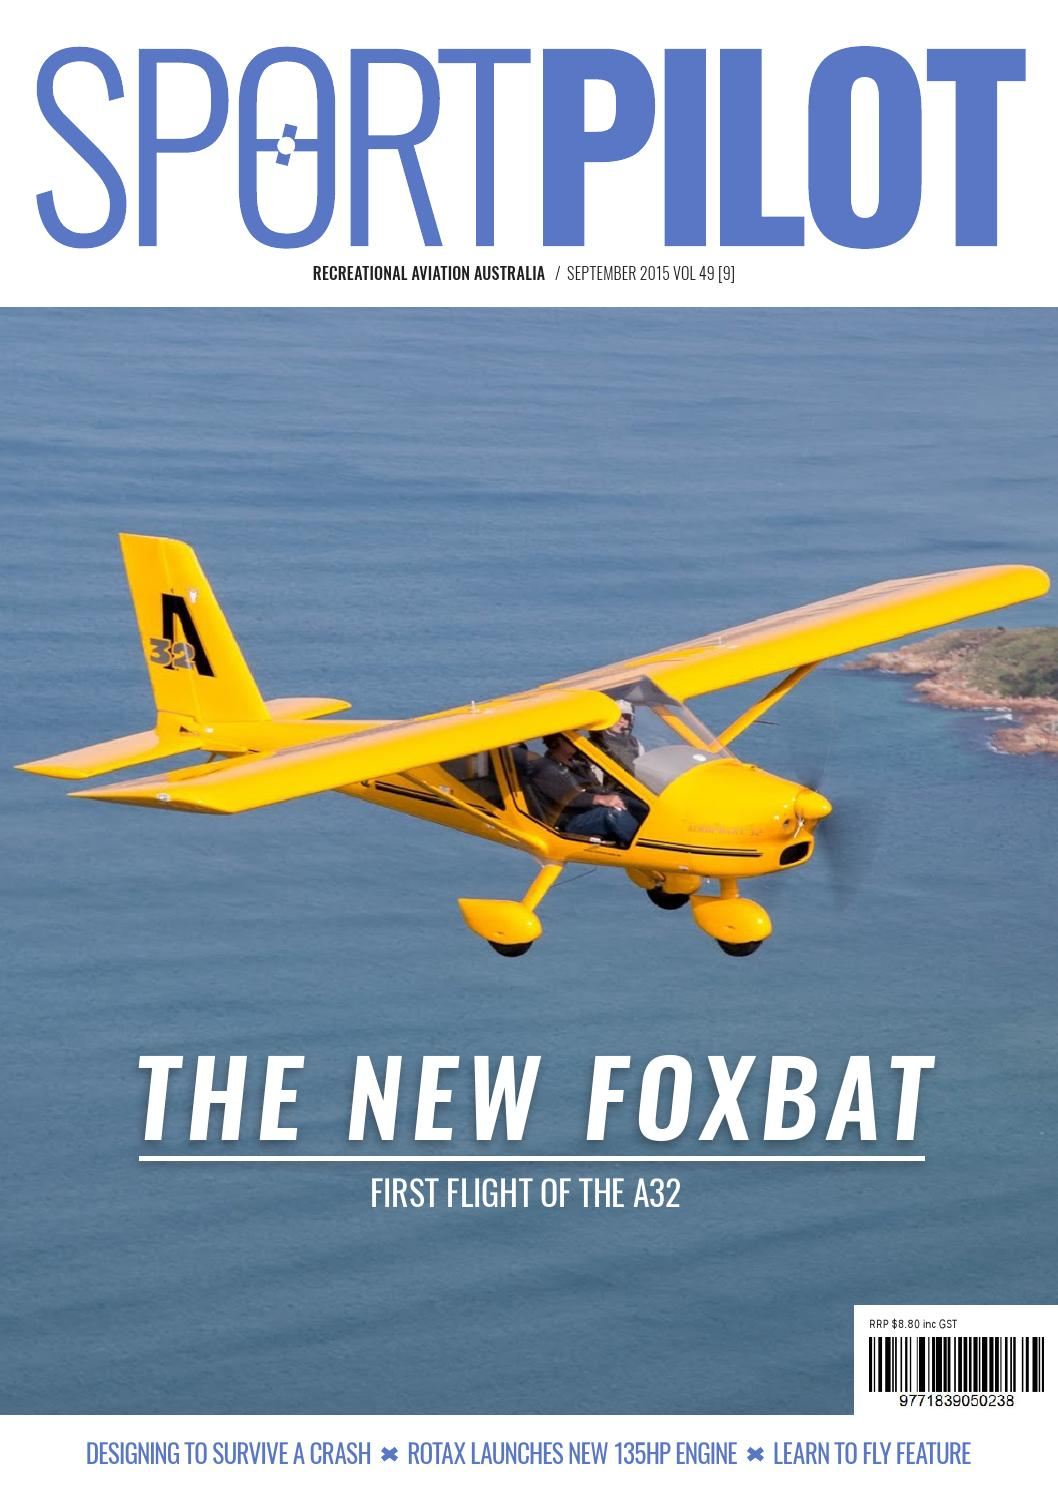 sport pilot 49 sep 2015 by recreational aviation australia issuu